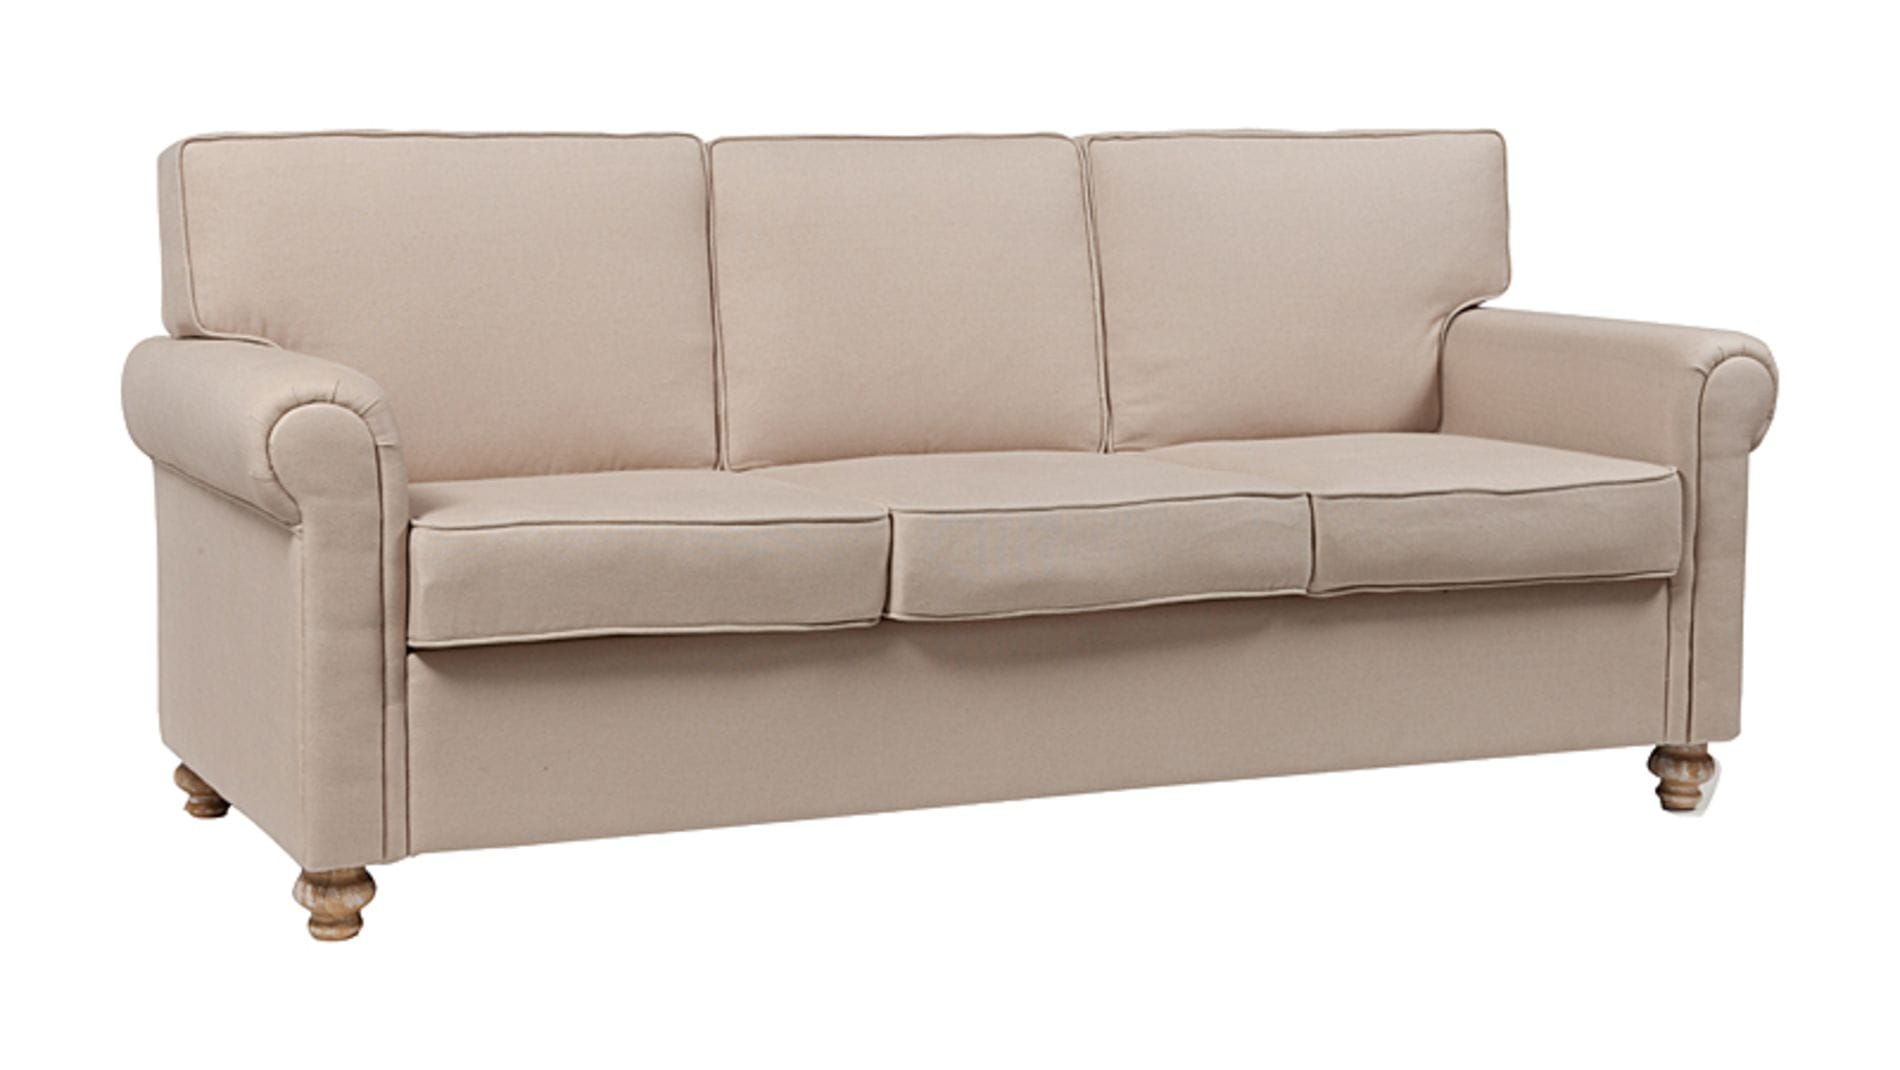 Диван The Pettite Lancaster Upholstered Sofa Кремовый Лен